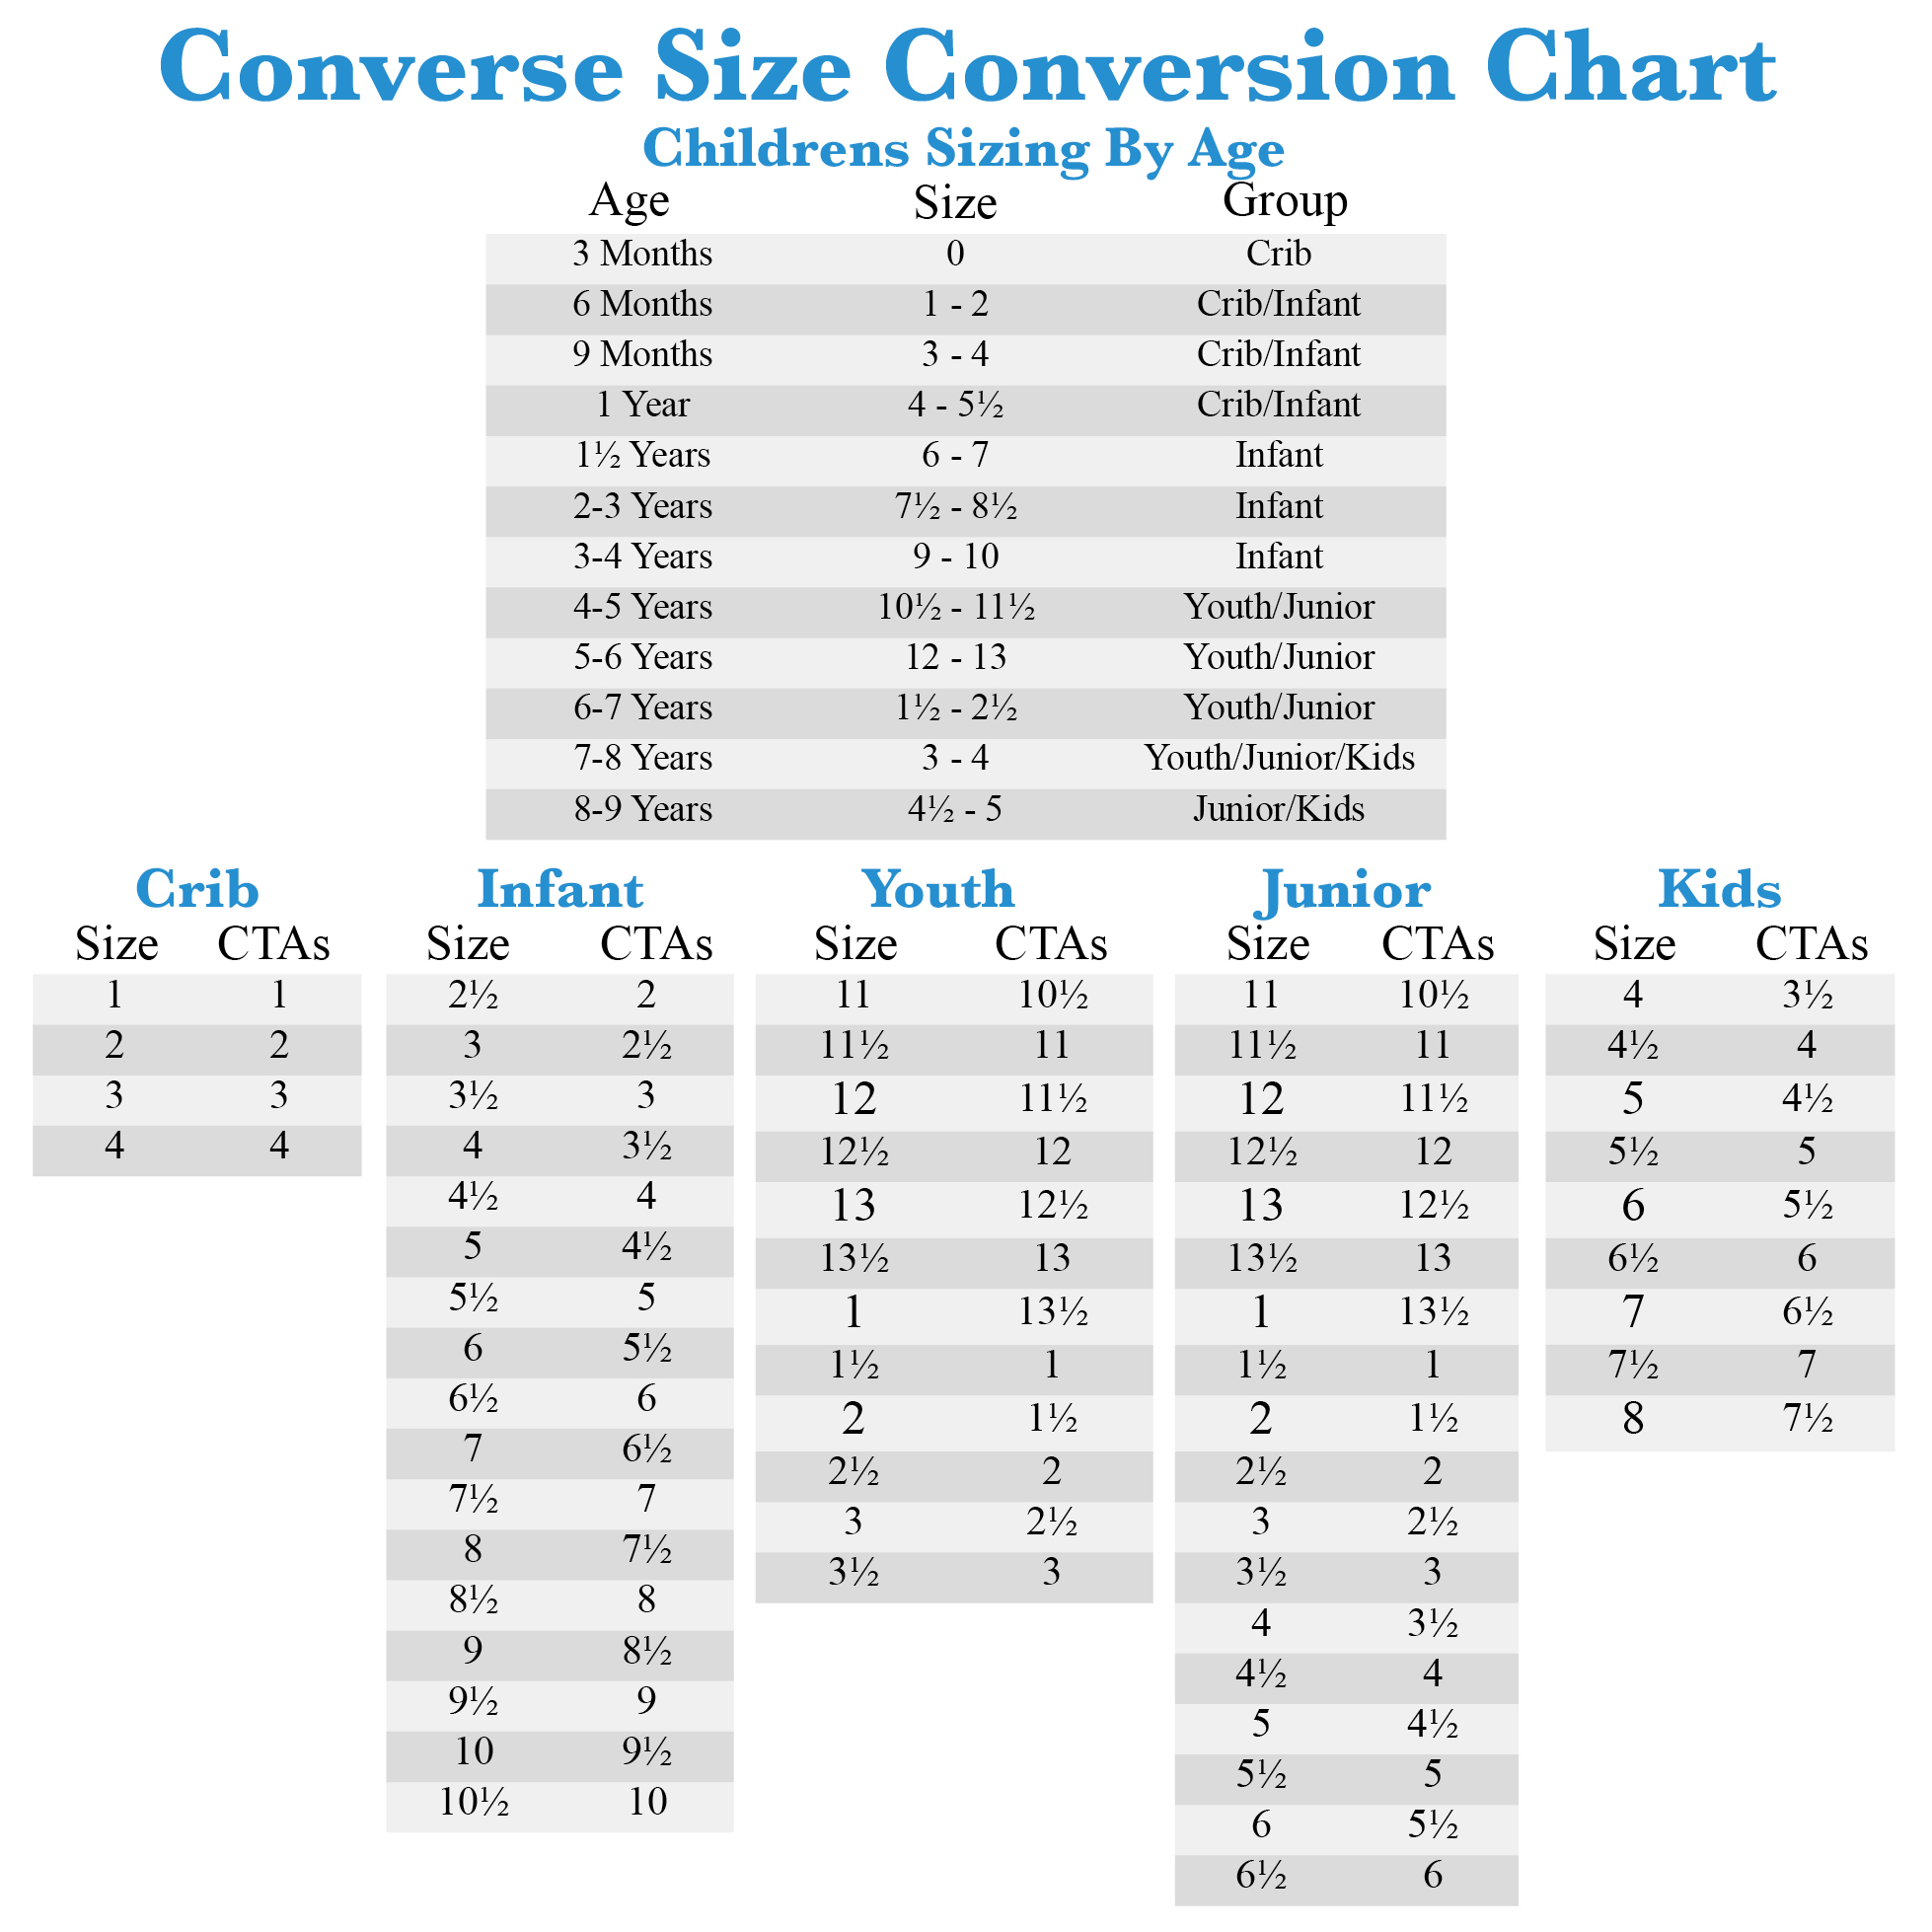 For toddlers and small kids, use the first size chart which is for both girls and boys. For older children, use the respective chart for girls and boys. Please note that these charts only is a guide to your child's clothing size, and that the sizes may vary between different brands.